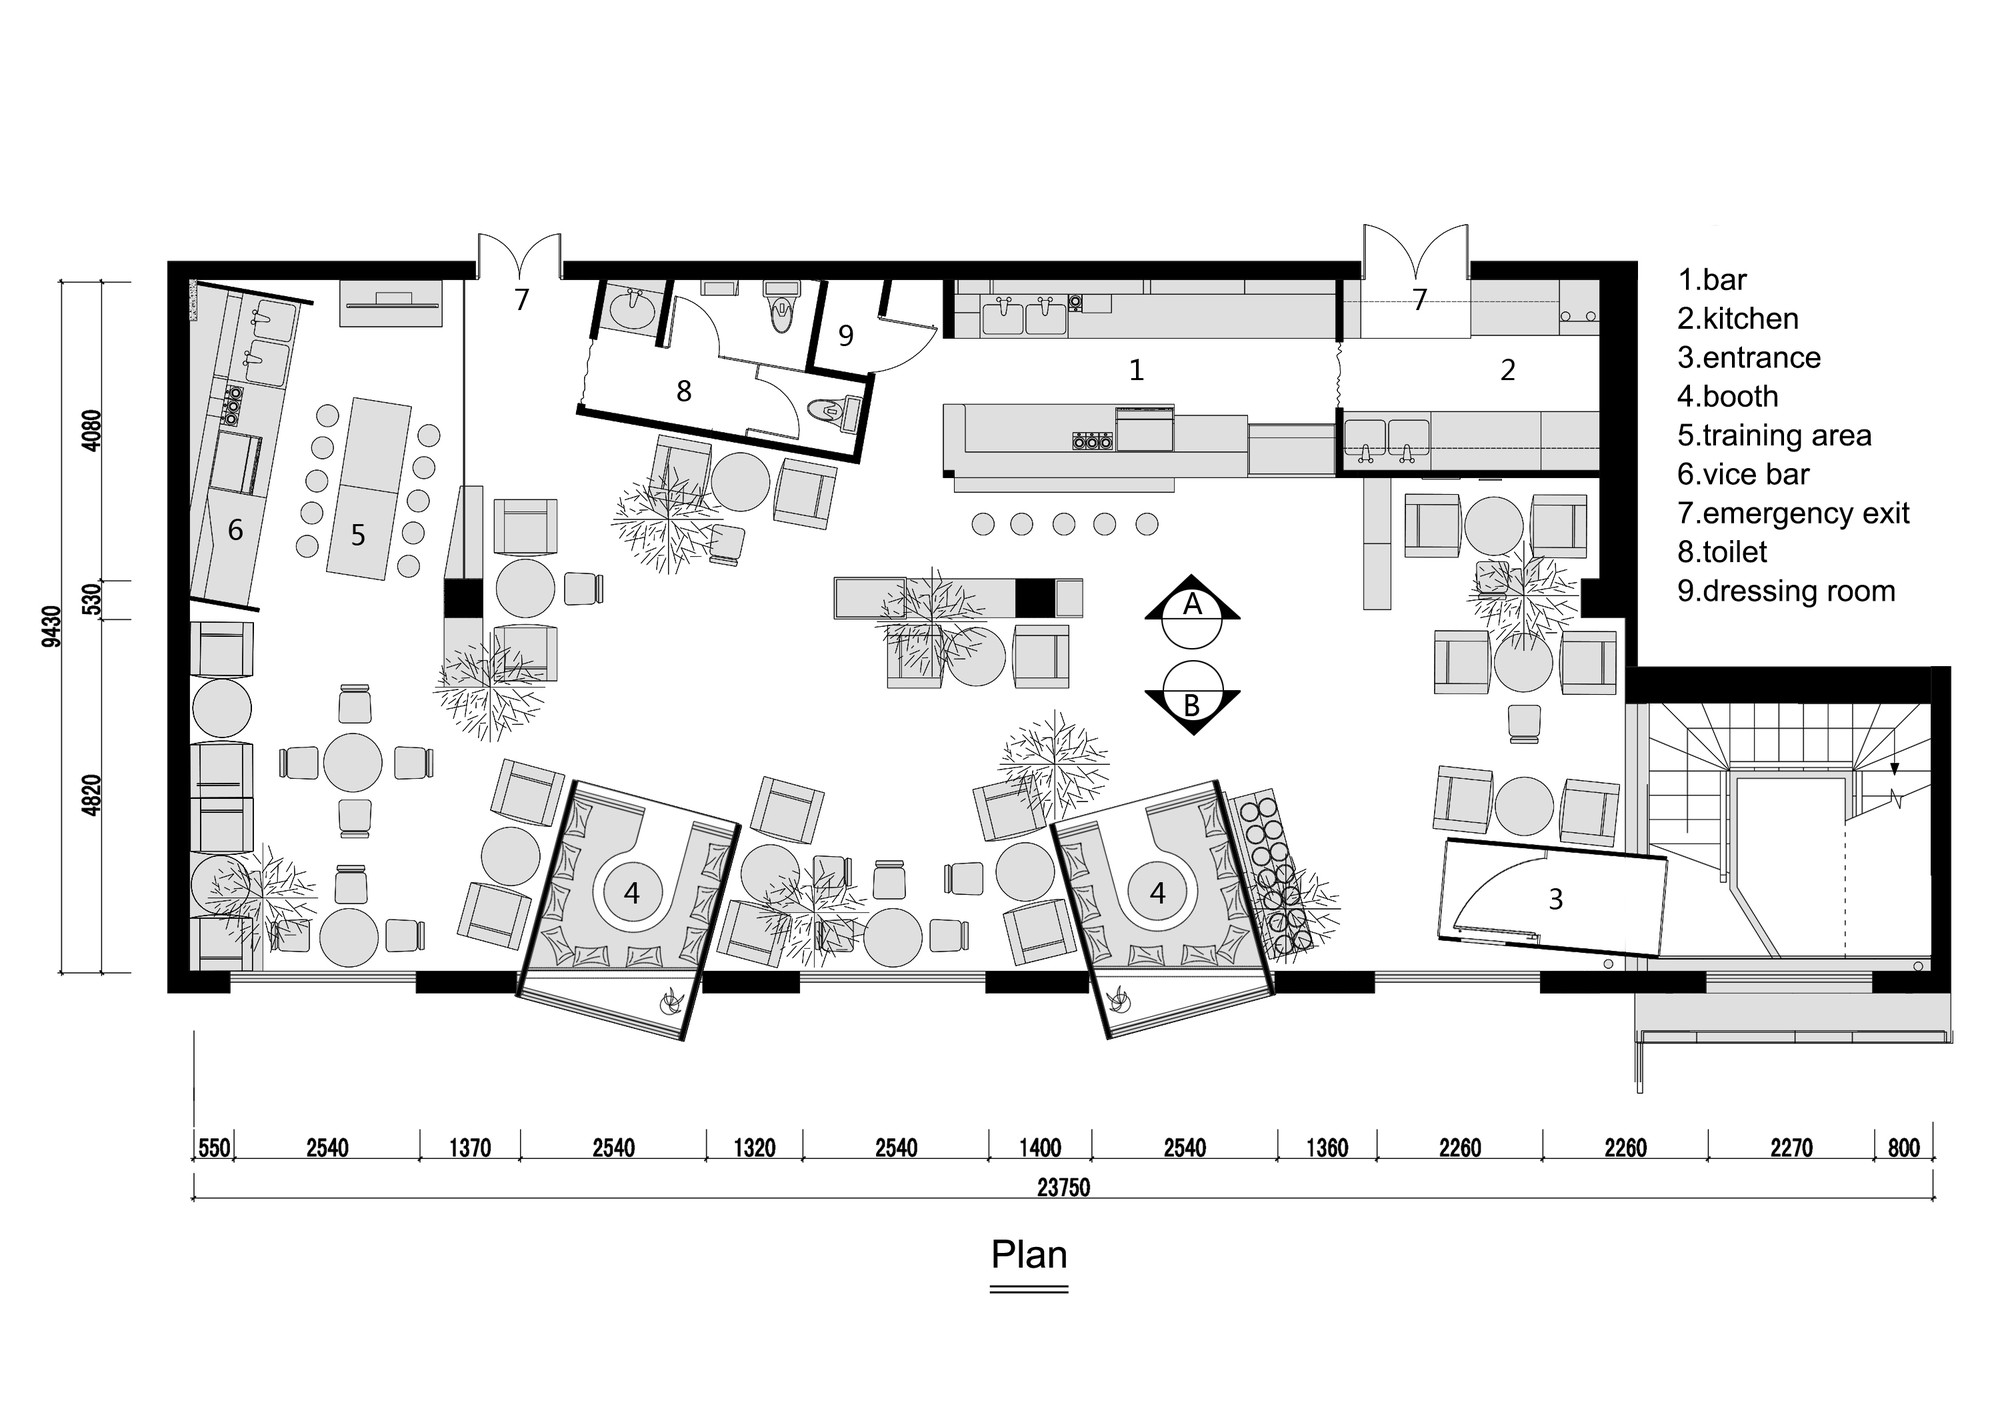 Kale caf yamo design archdaily for Coffee shop floor plan with dimensions